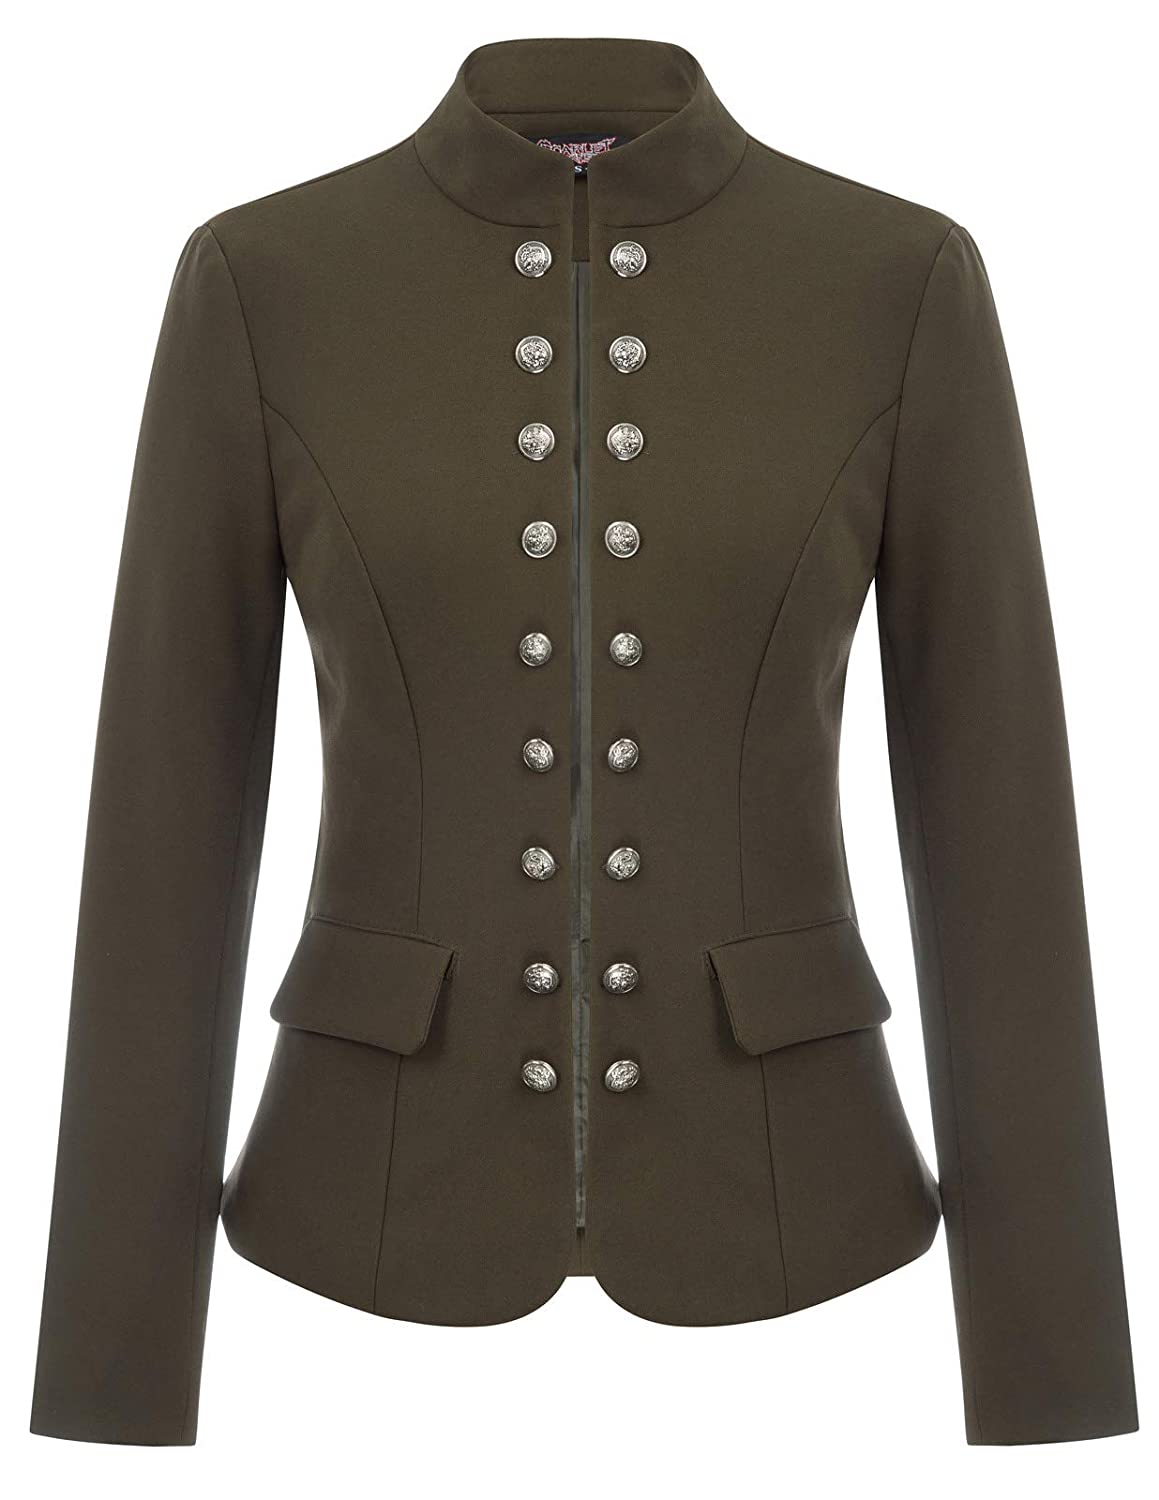 Steampunk Jacket | Steampunk Coat, Overcoat, Cape Womens Open Front Work Blazer Casual Buttons Jacket Suit Cardigan $45.99 AT vintagedancer.com